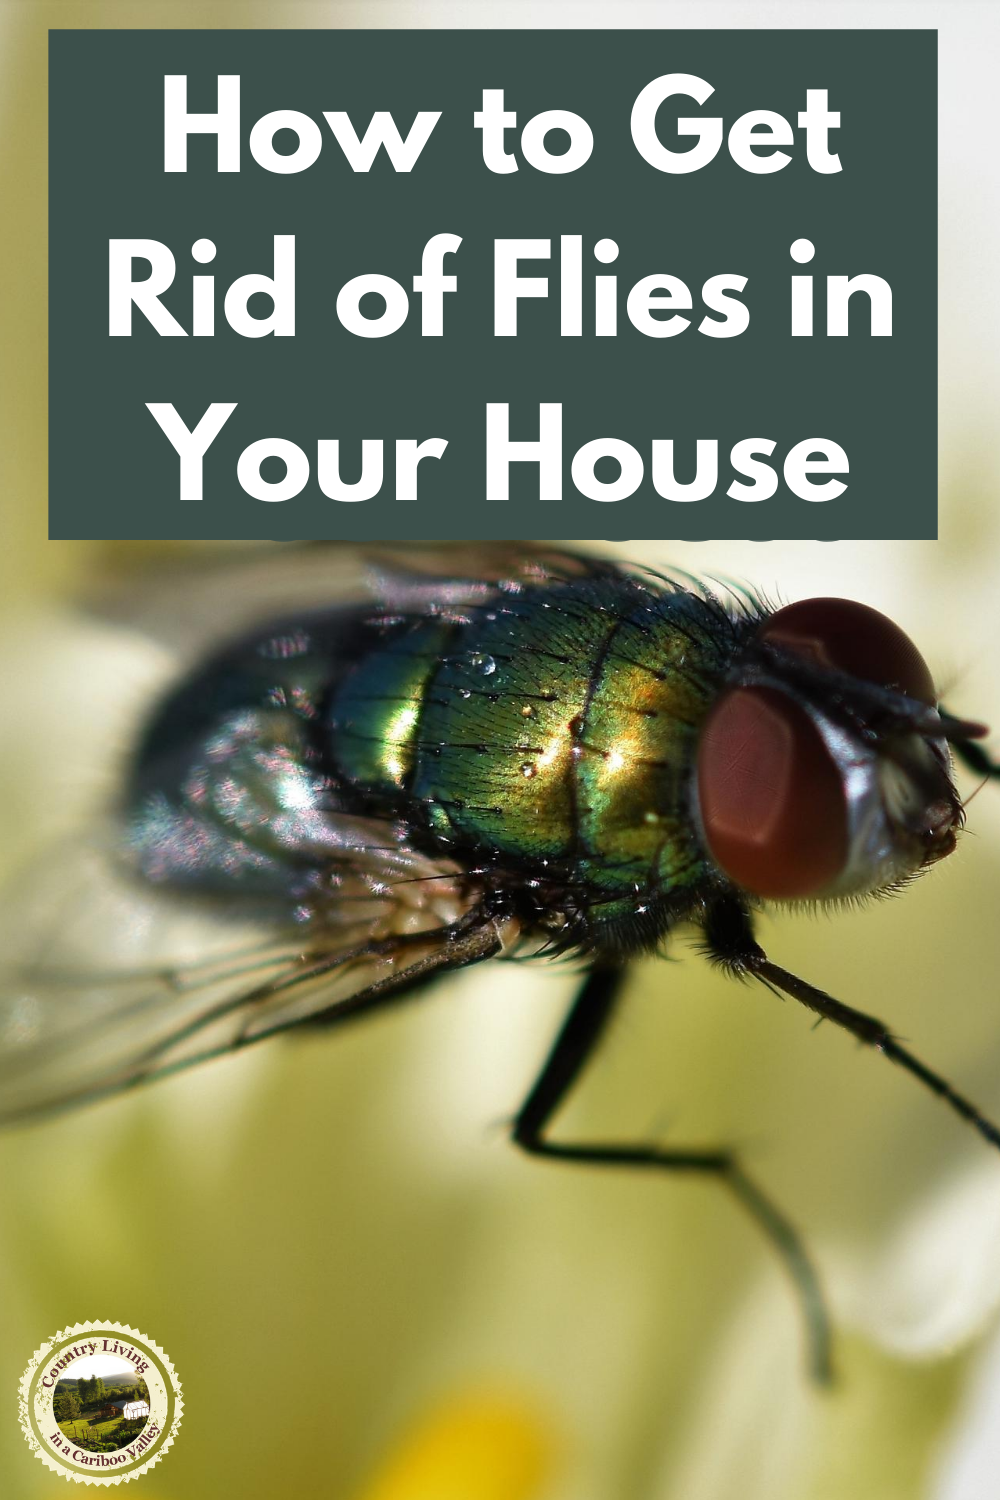 0fd6b7da590f83e40231ec28e0a09ae0 - How To Get Rid Of Green Flies In The House